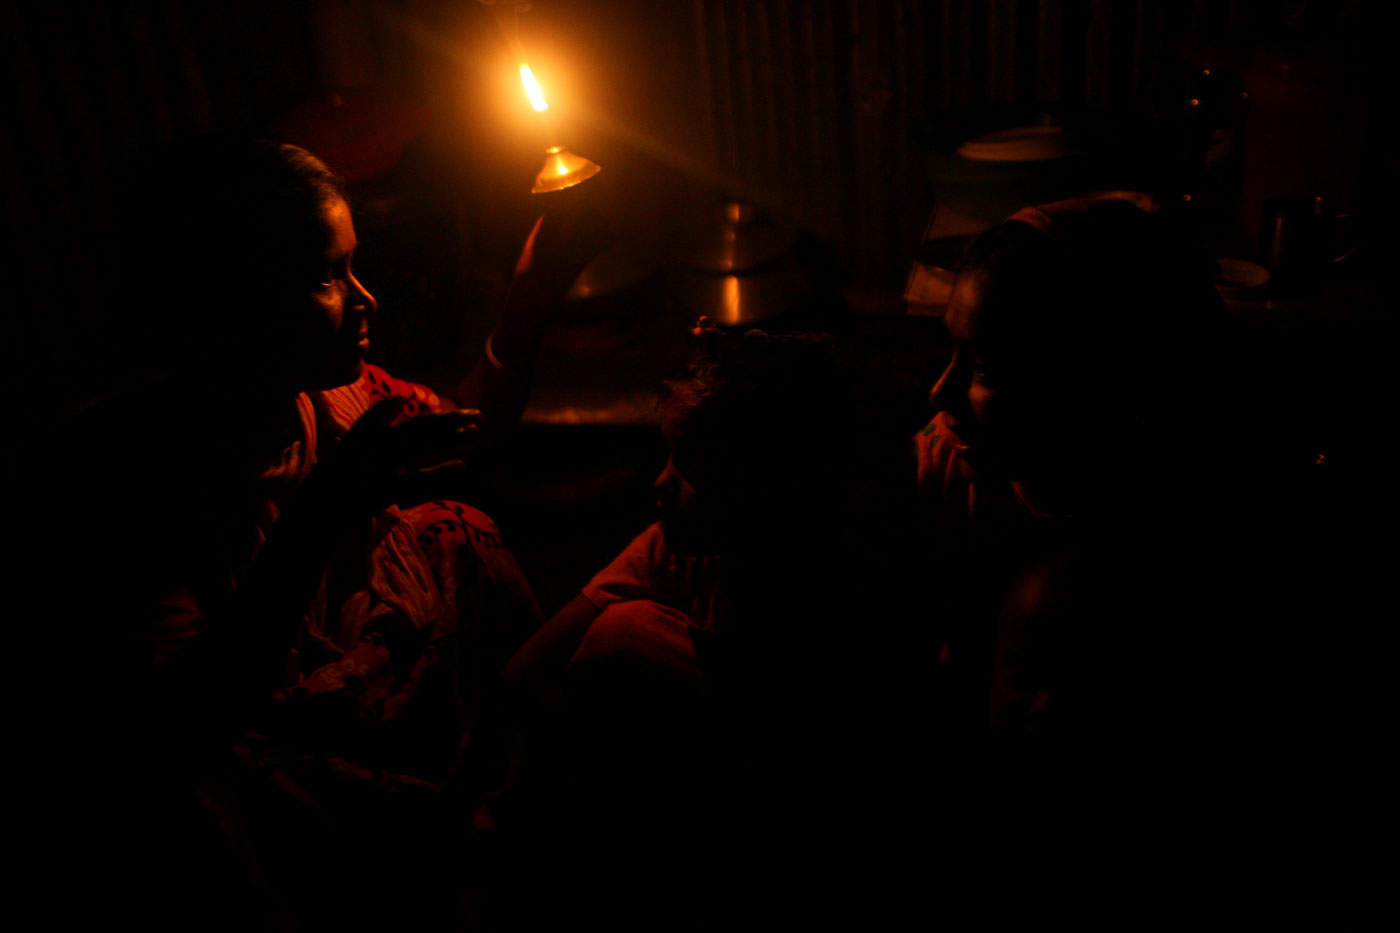 A single lamp provides Mahe Noor light during a power outage. Noor hopes that someday their lot in life will improve and they can leave the slum.